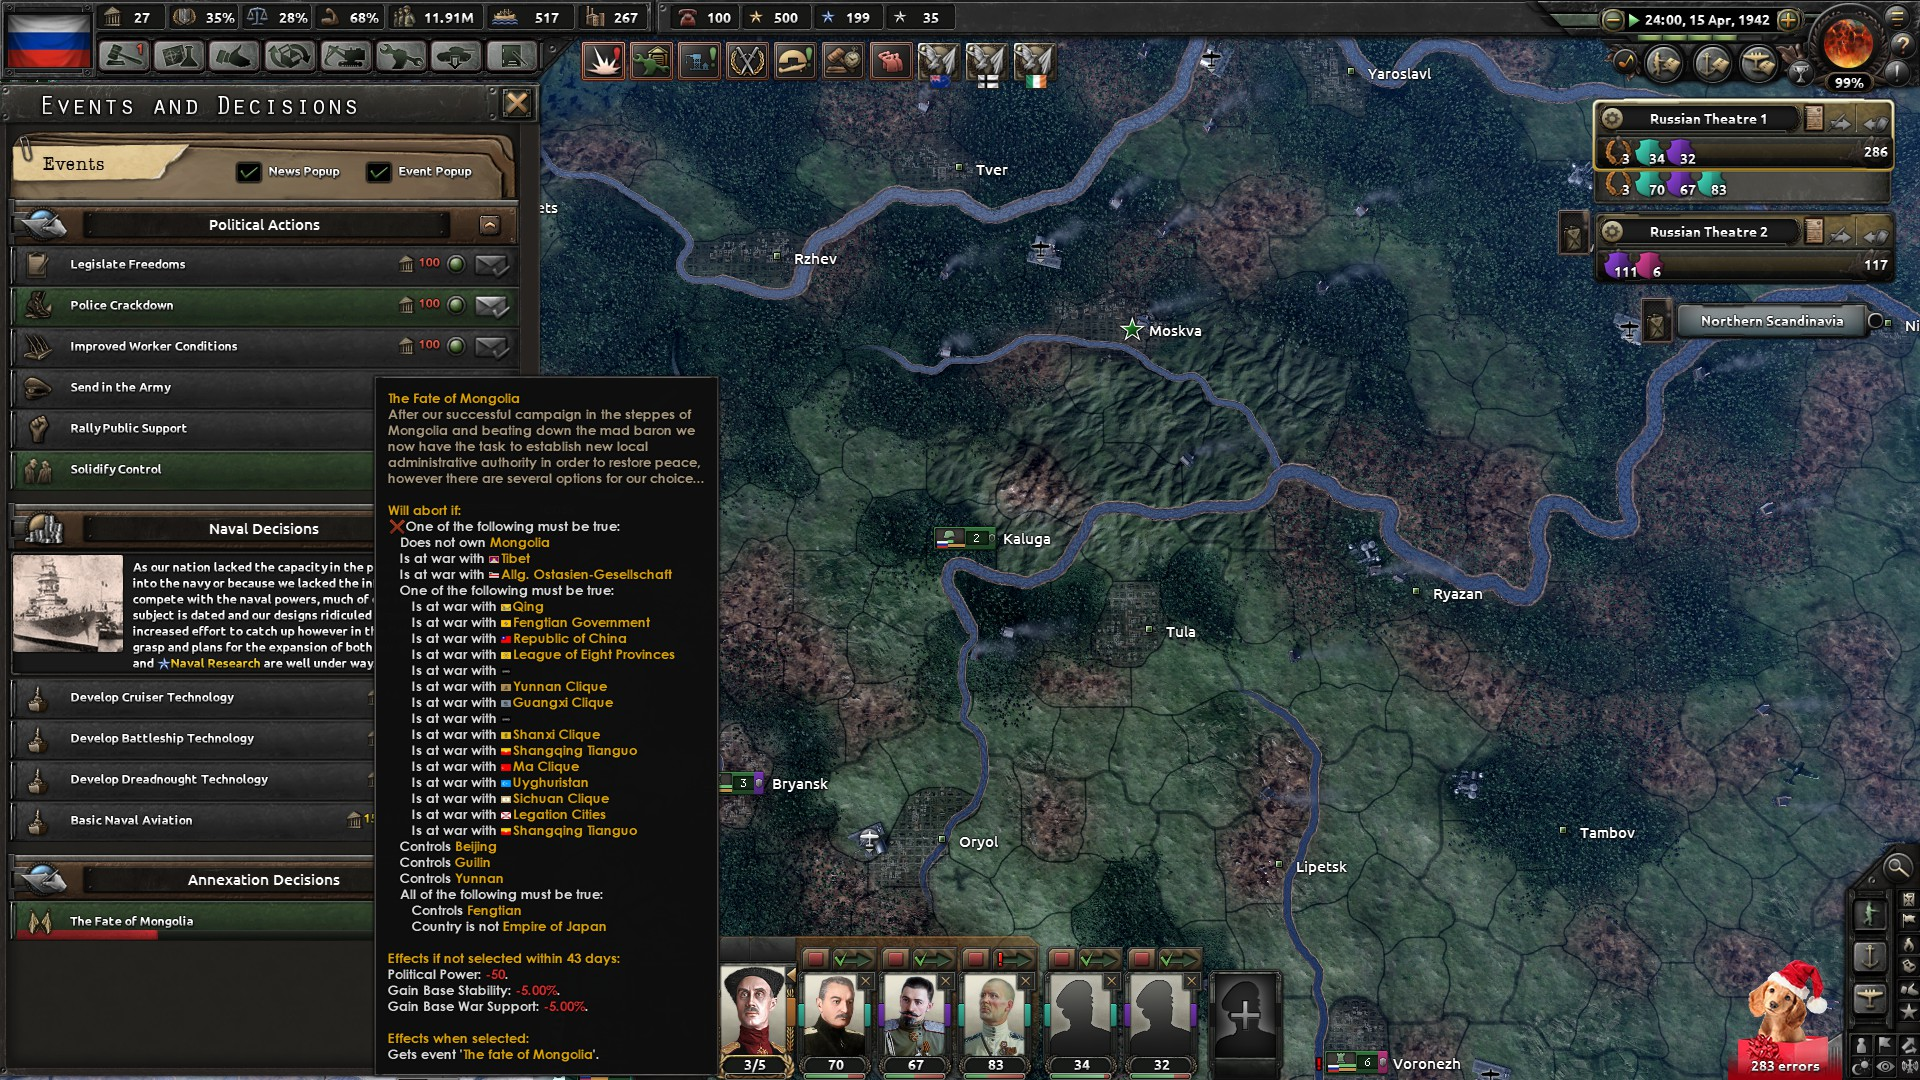 Play as Russia, defeated Mongolia, tried to integrate